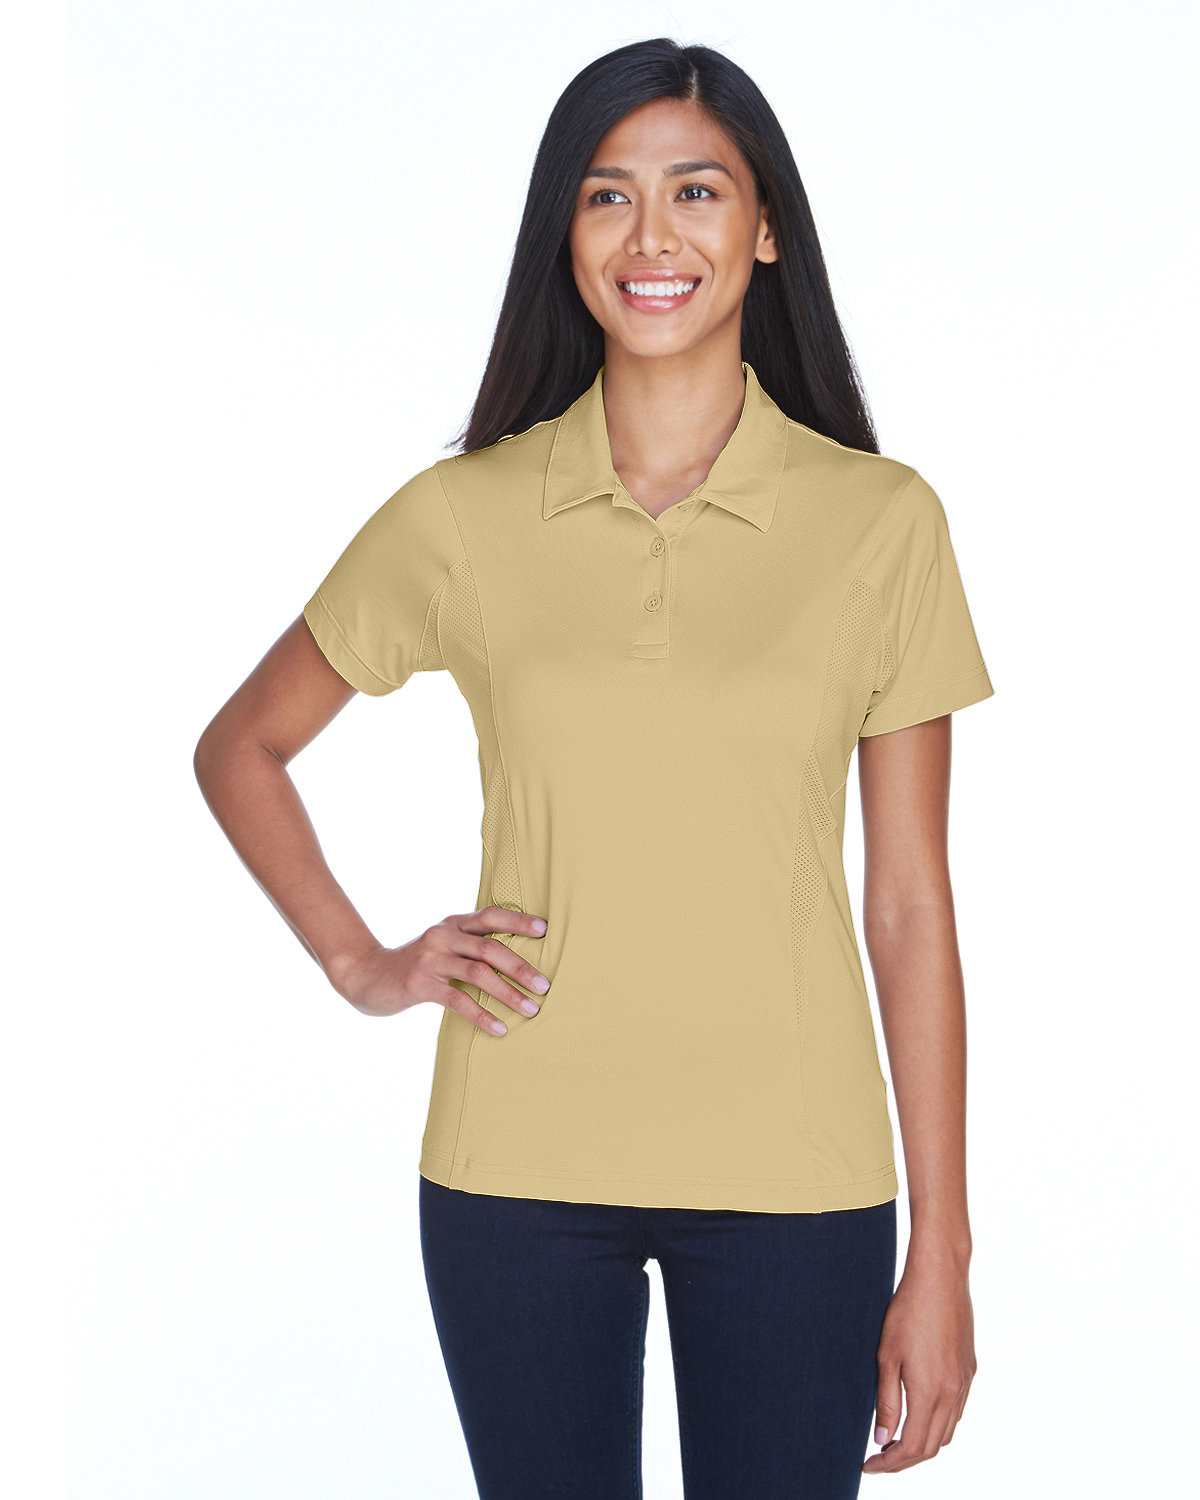 Team 365 Ladies' Charger Performance Polo SPORT VEGAS GOLD